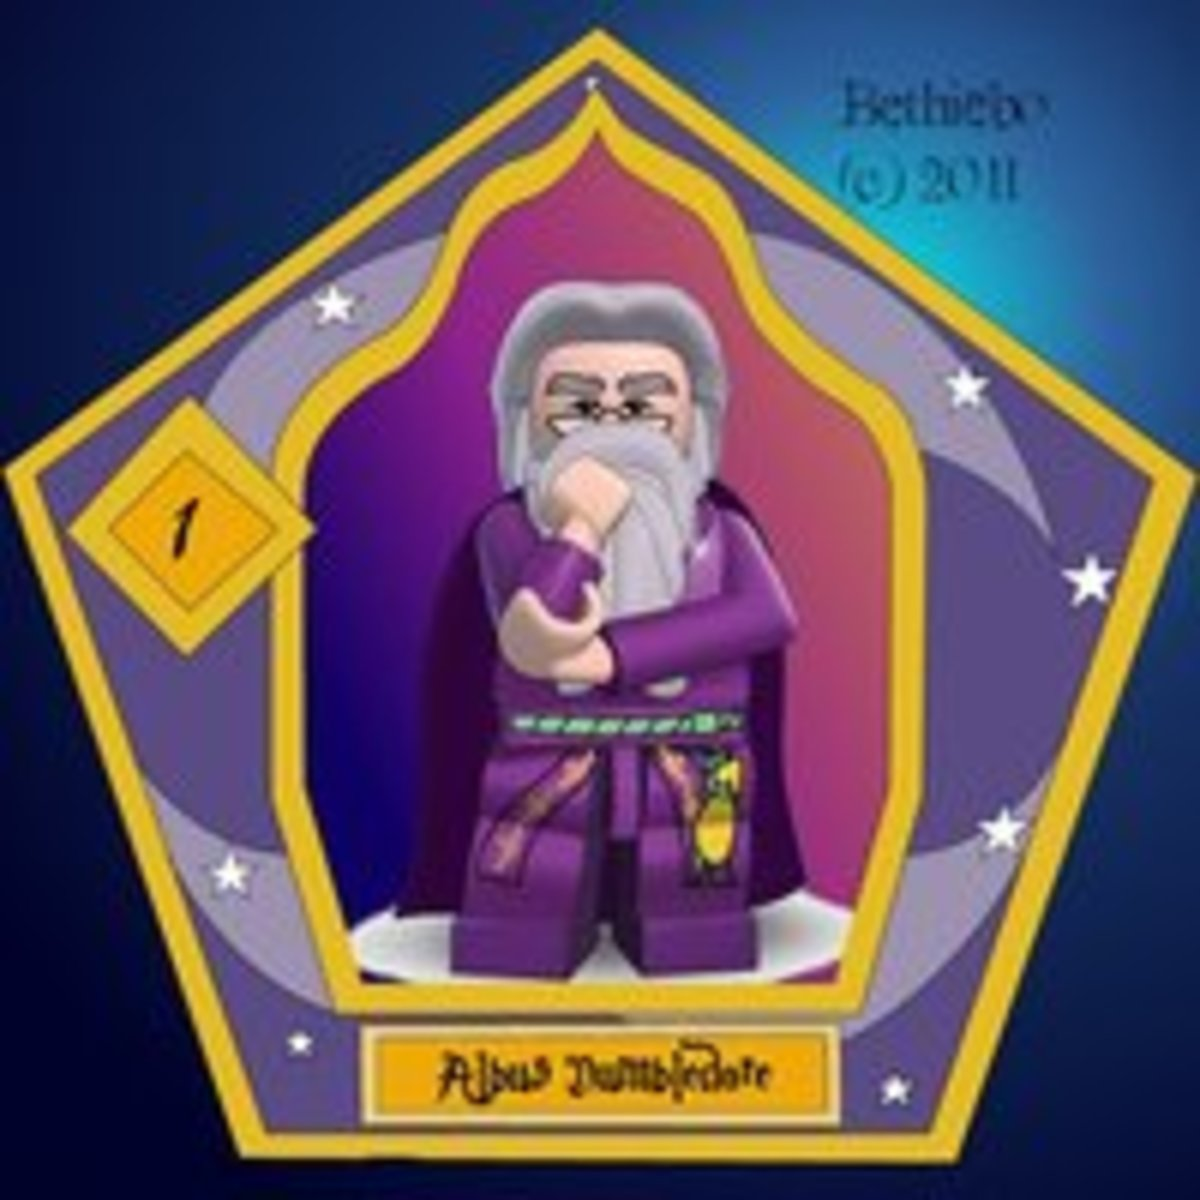 Descriptions of some famous wizards to help with english/literacy - Gandolf, Dumbledore, Harry Potter, Hermione Granger